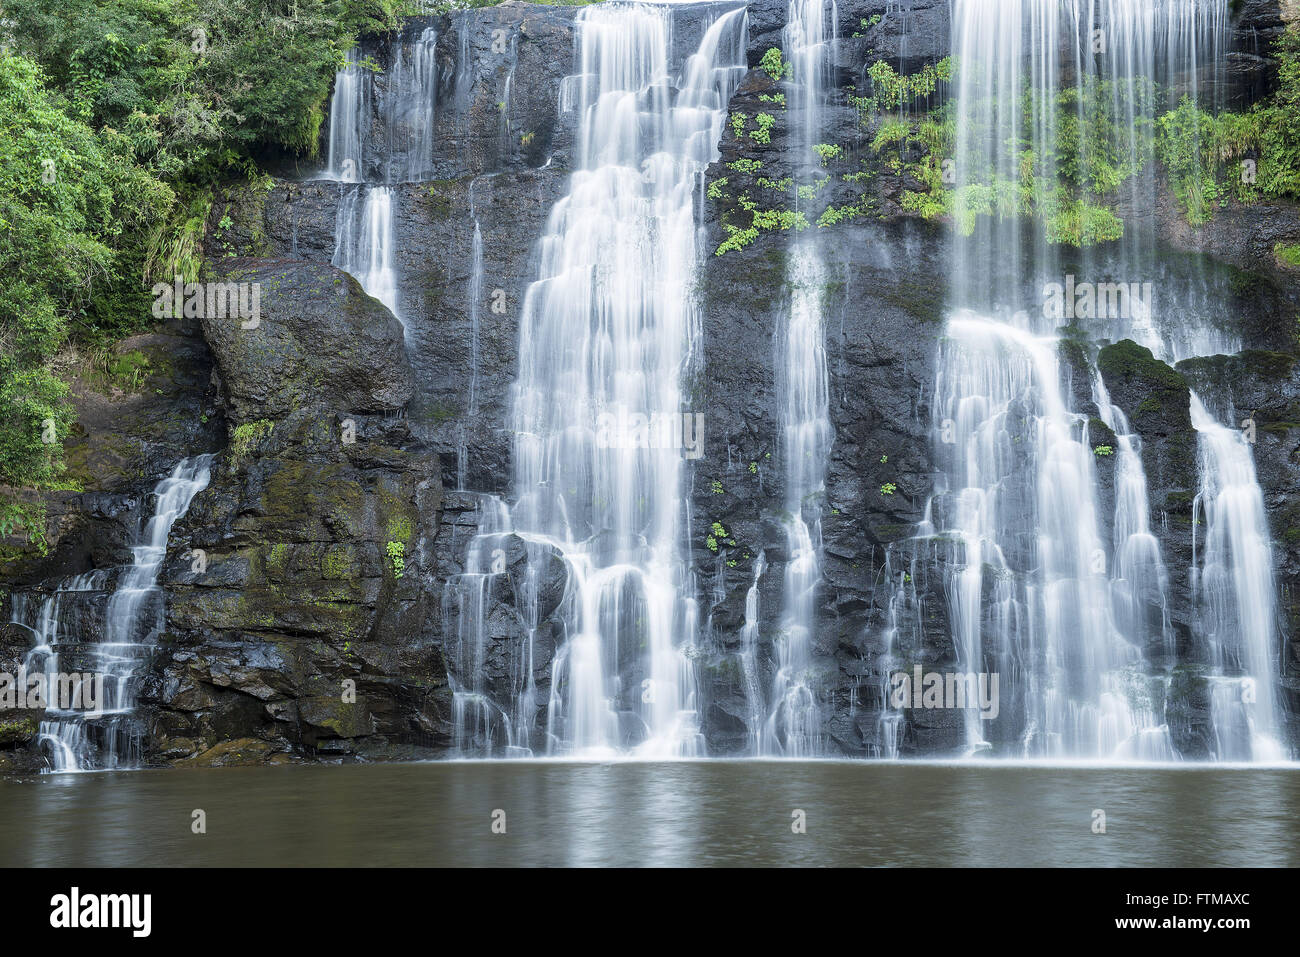 Waterfall Uncle Franca - Stock Image